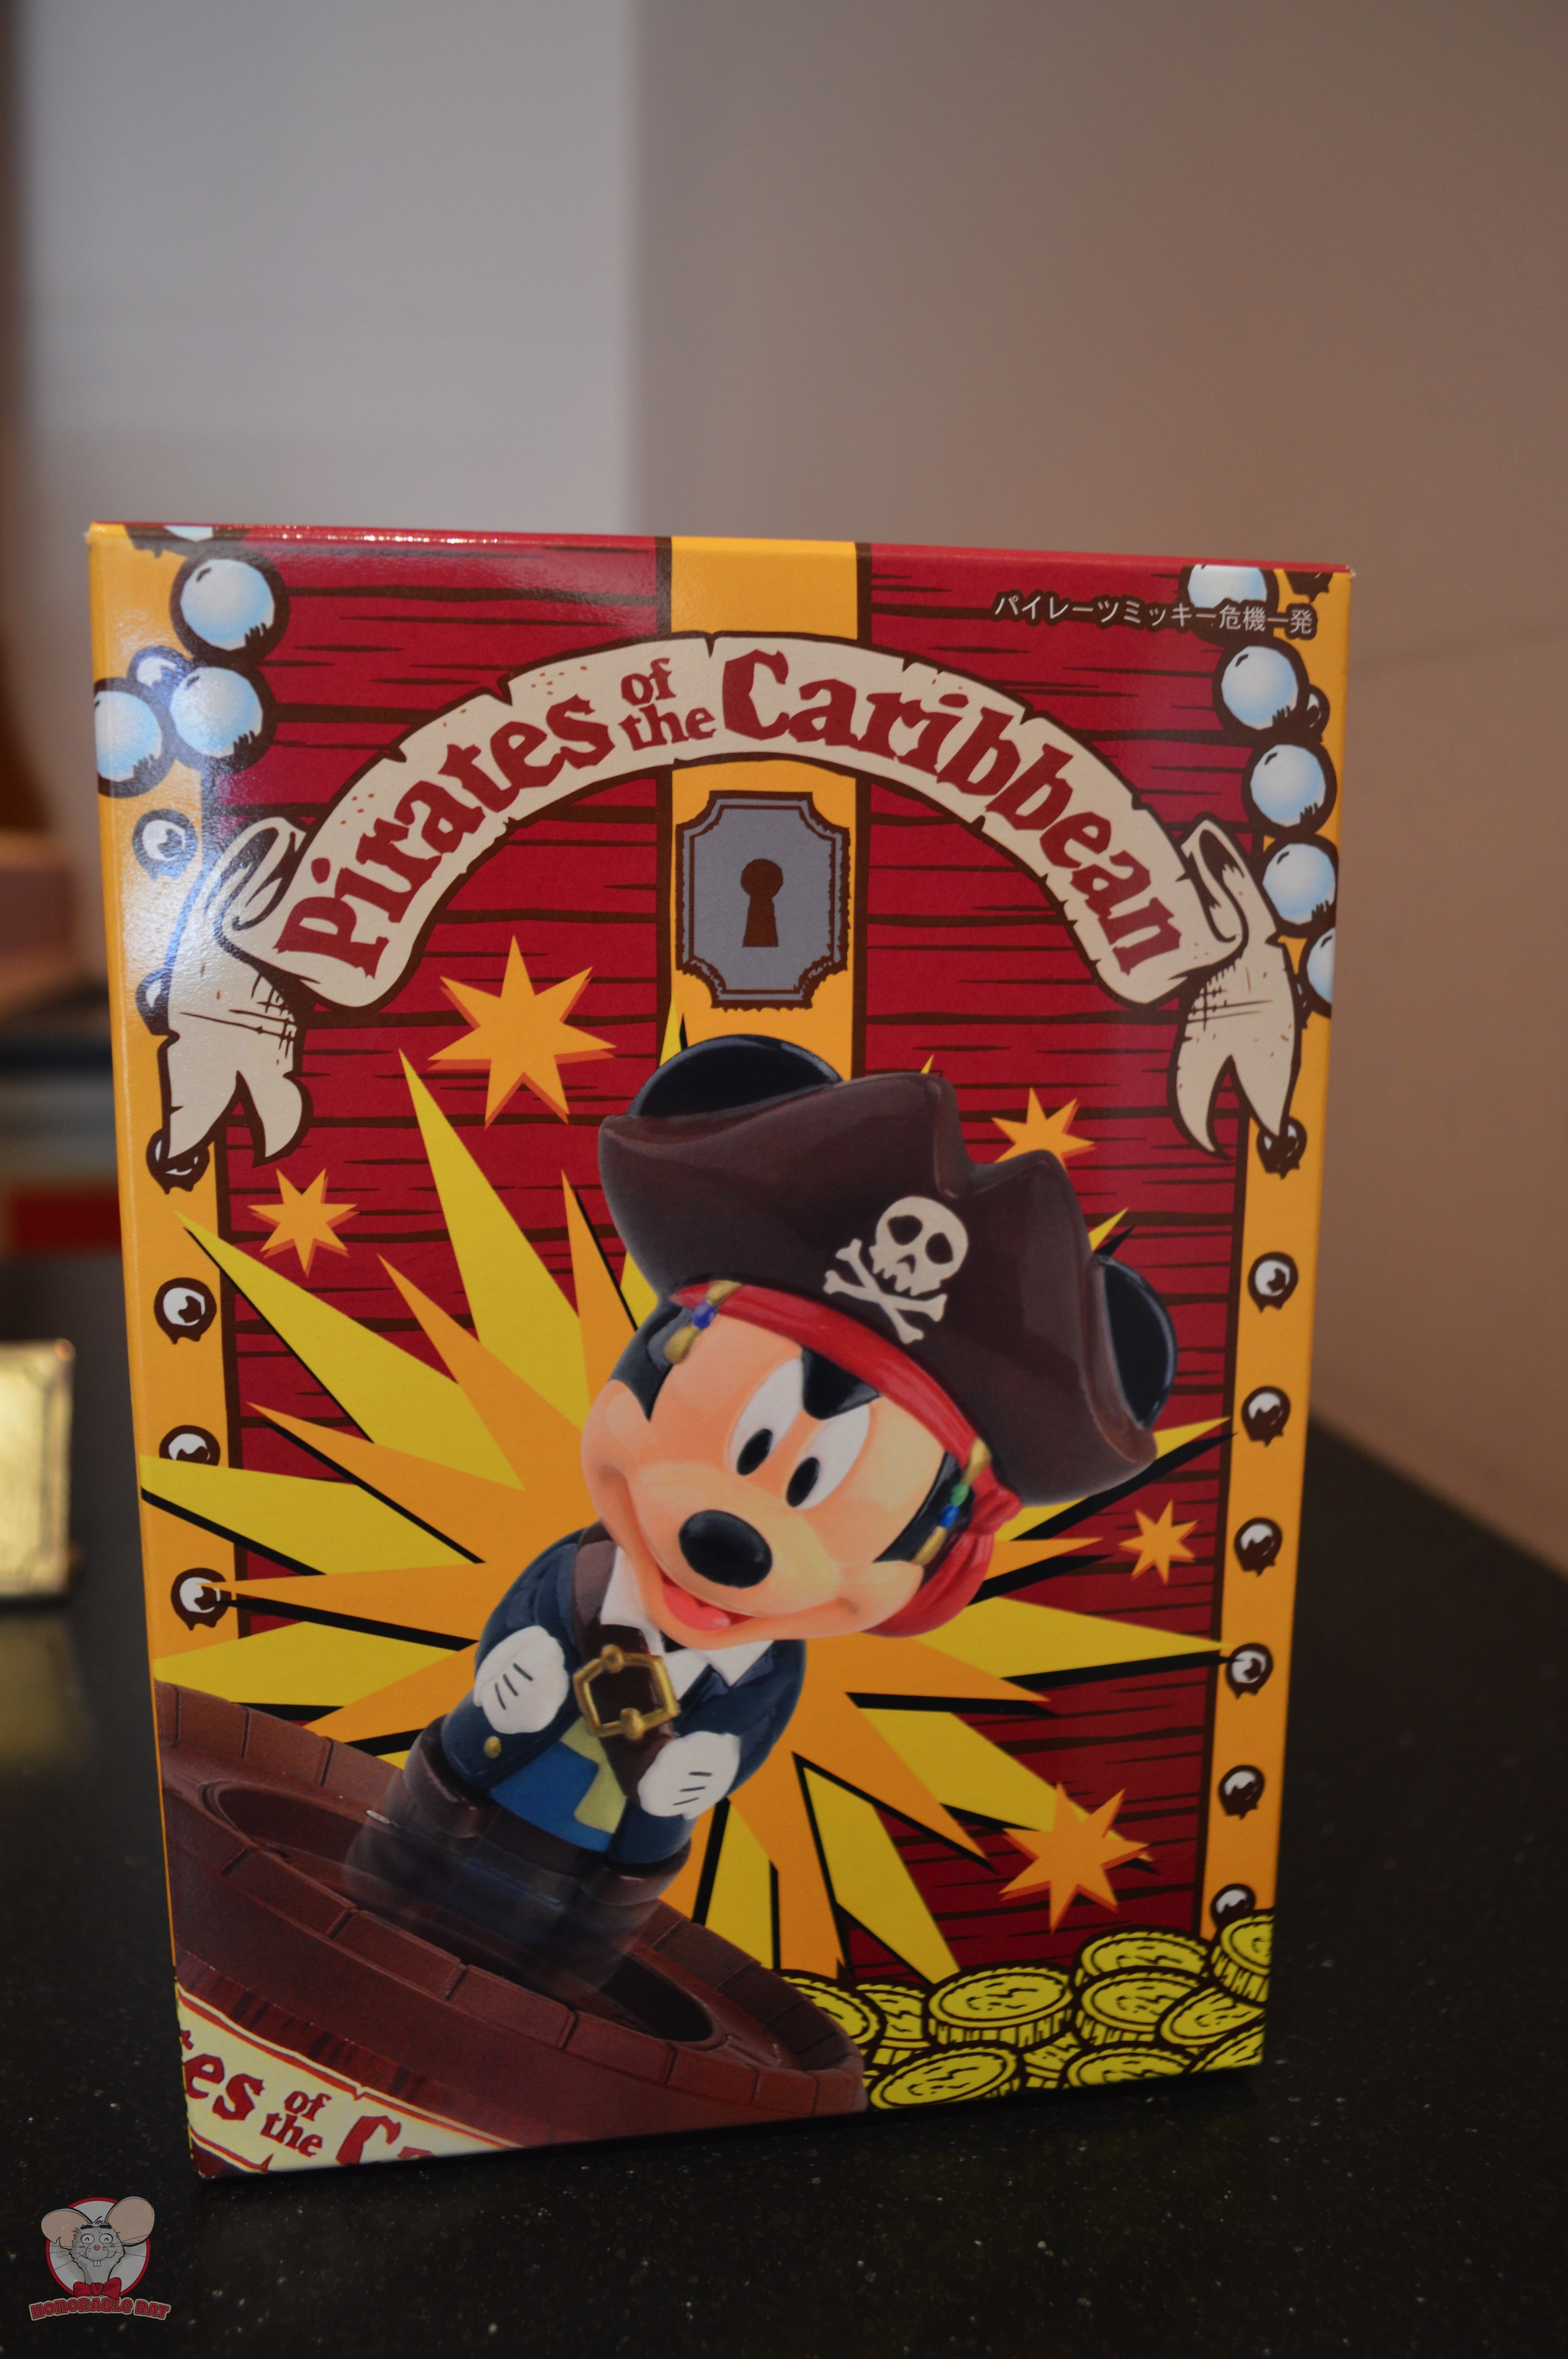 Pirates of The Caribbean Toy (Front): 1,680 yen